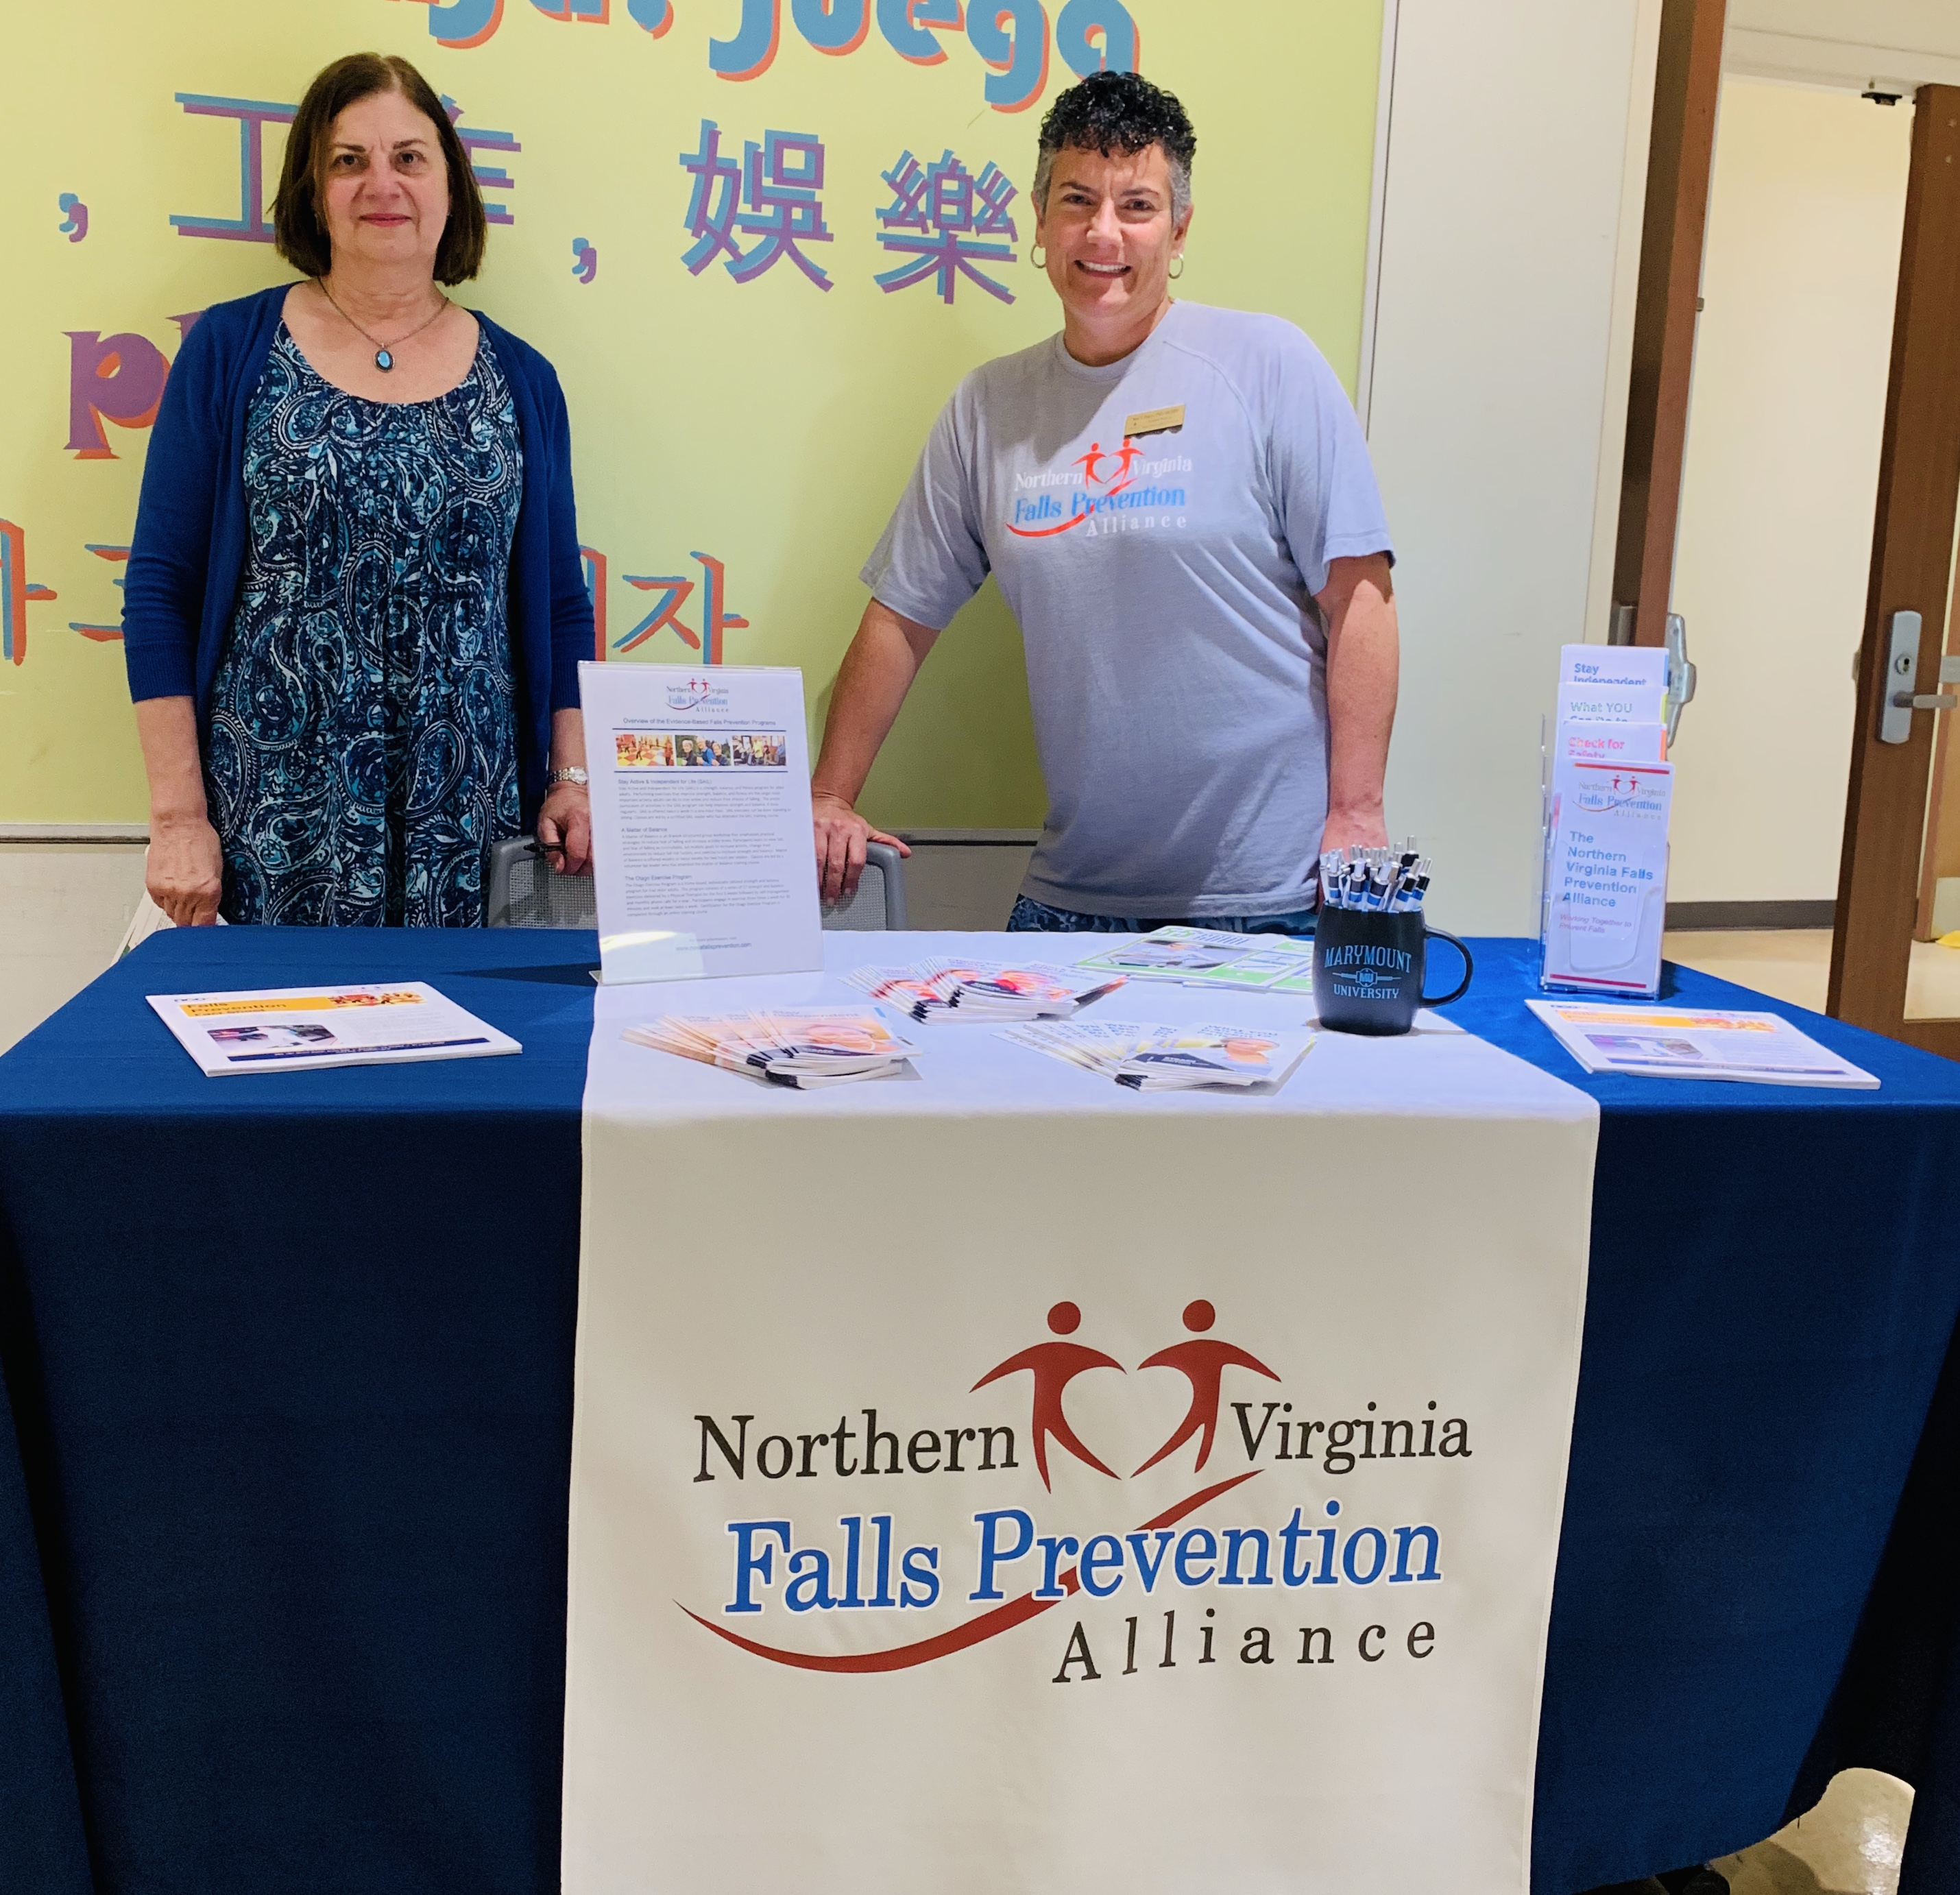 Northern Virginia Falls Prevention Alliance information table